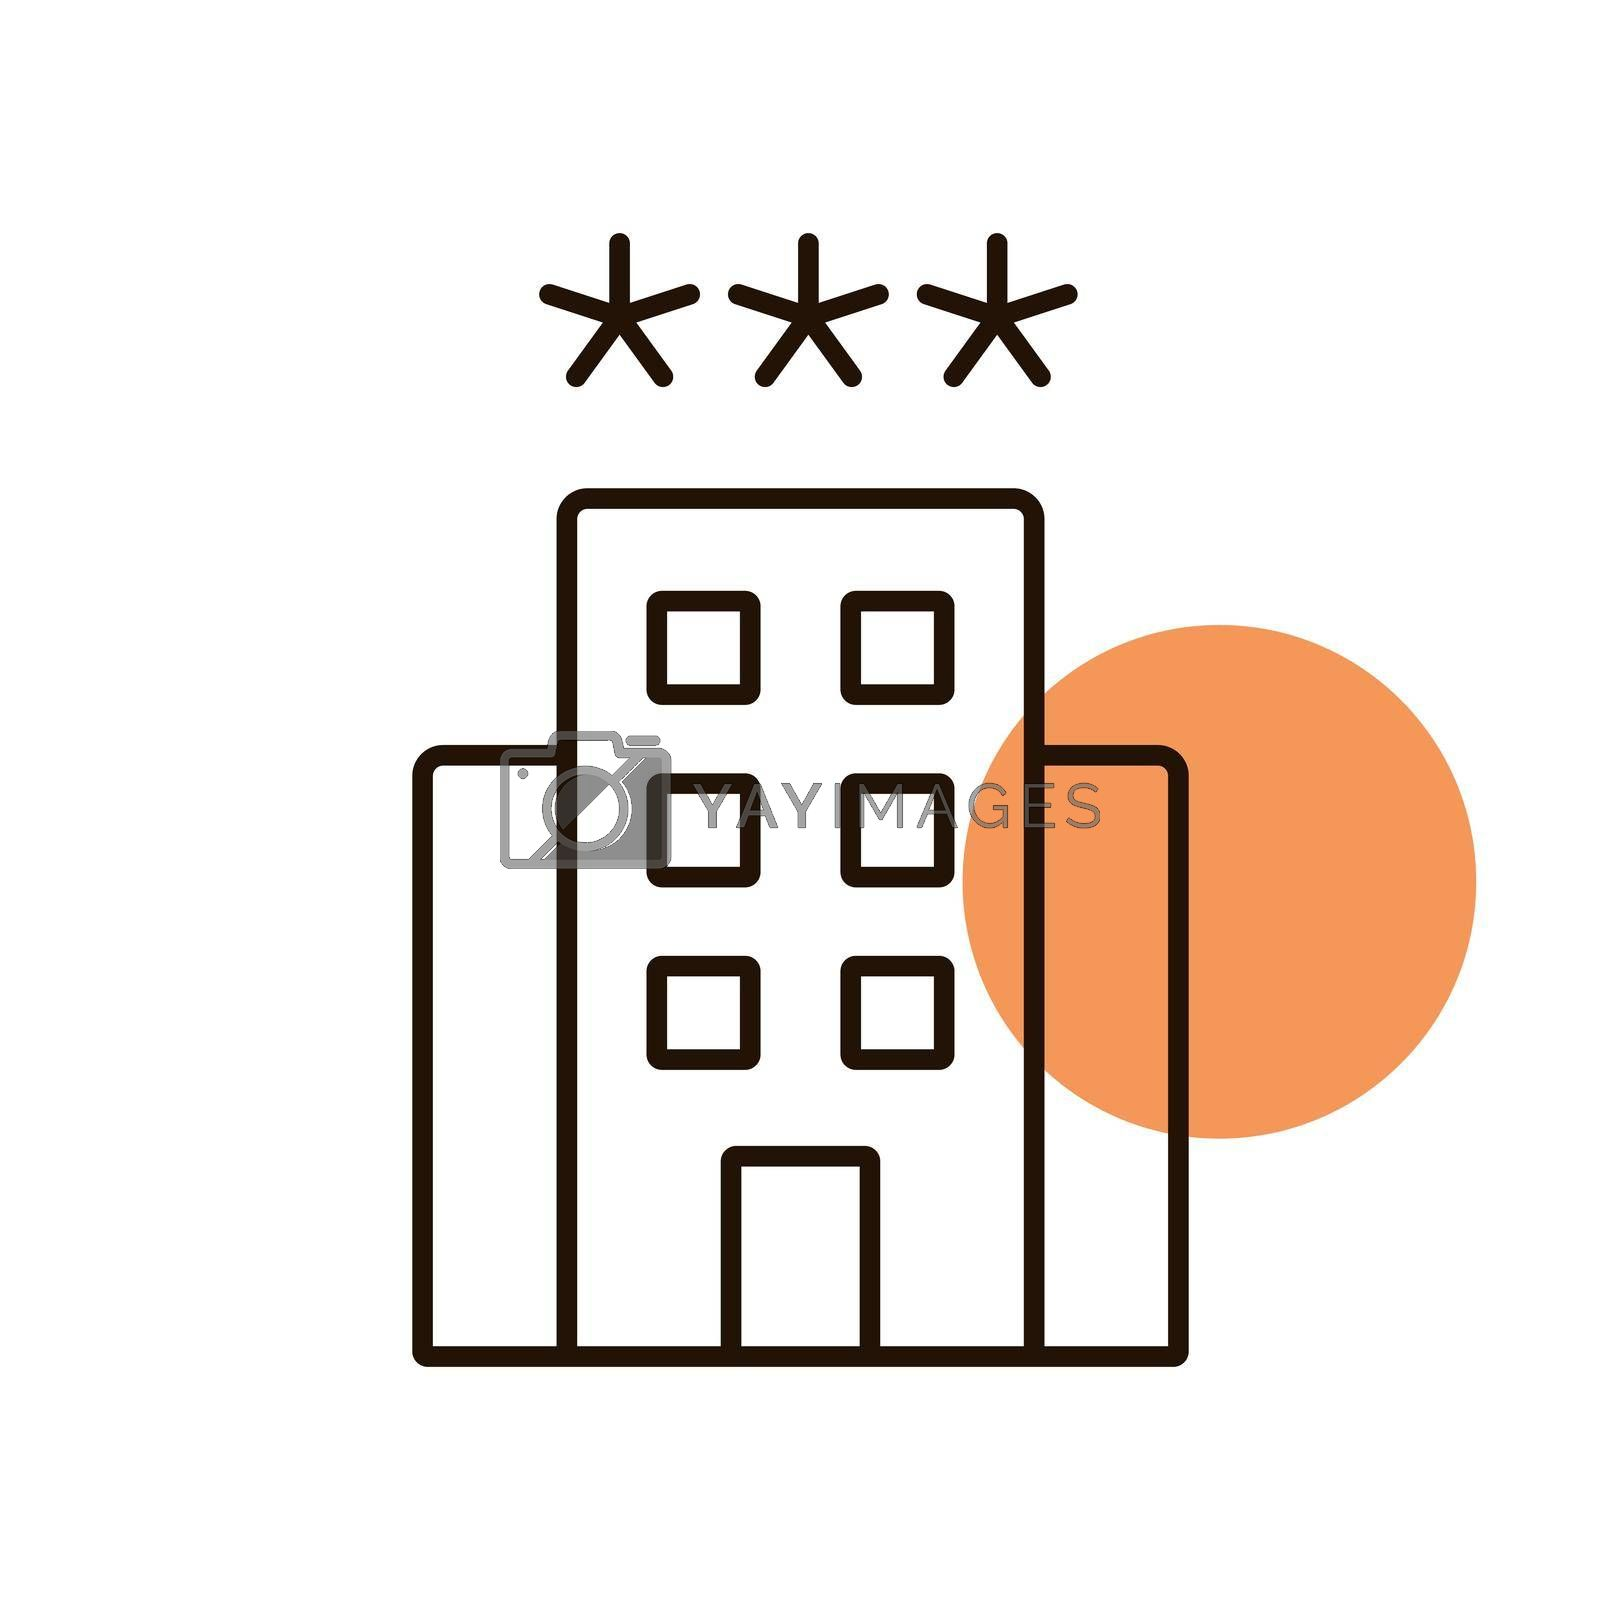 Three star hotel vector icon. Graph symbol for travel and tourism web site and apps design, logo, app, UI